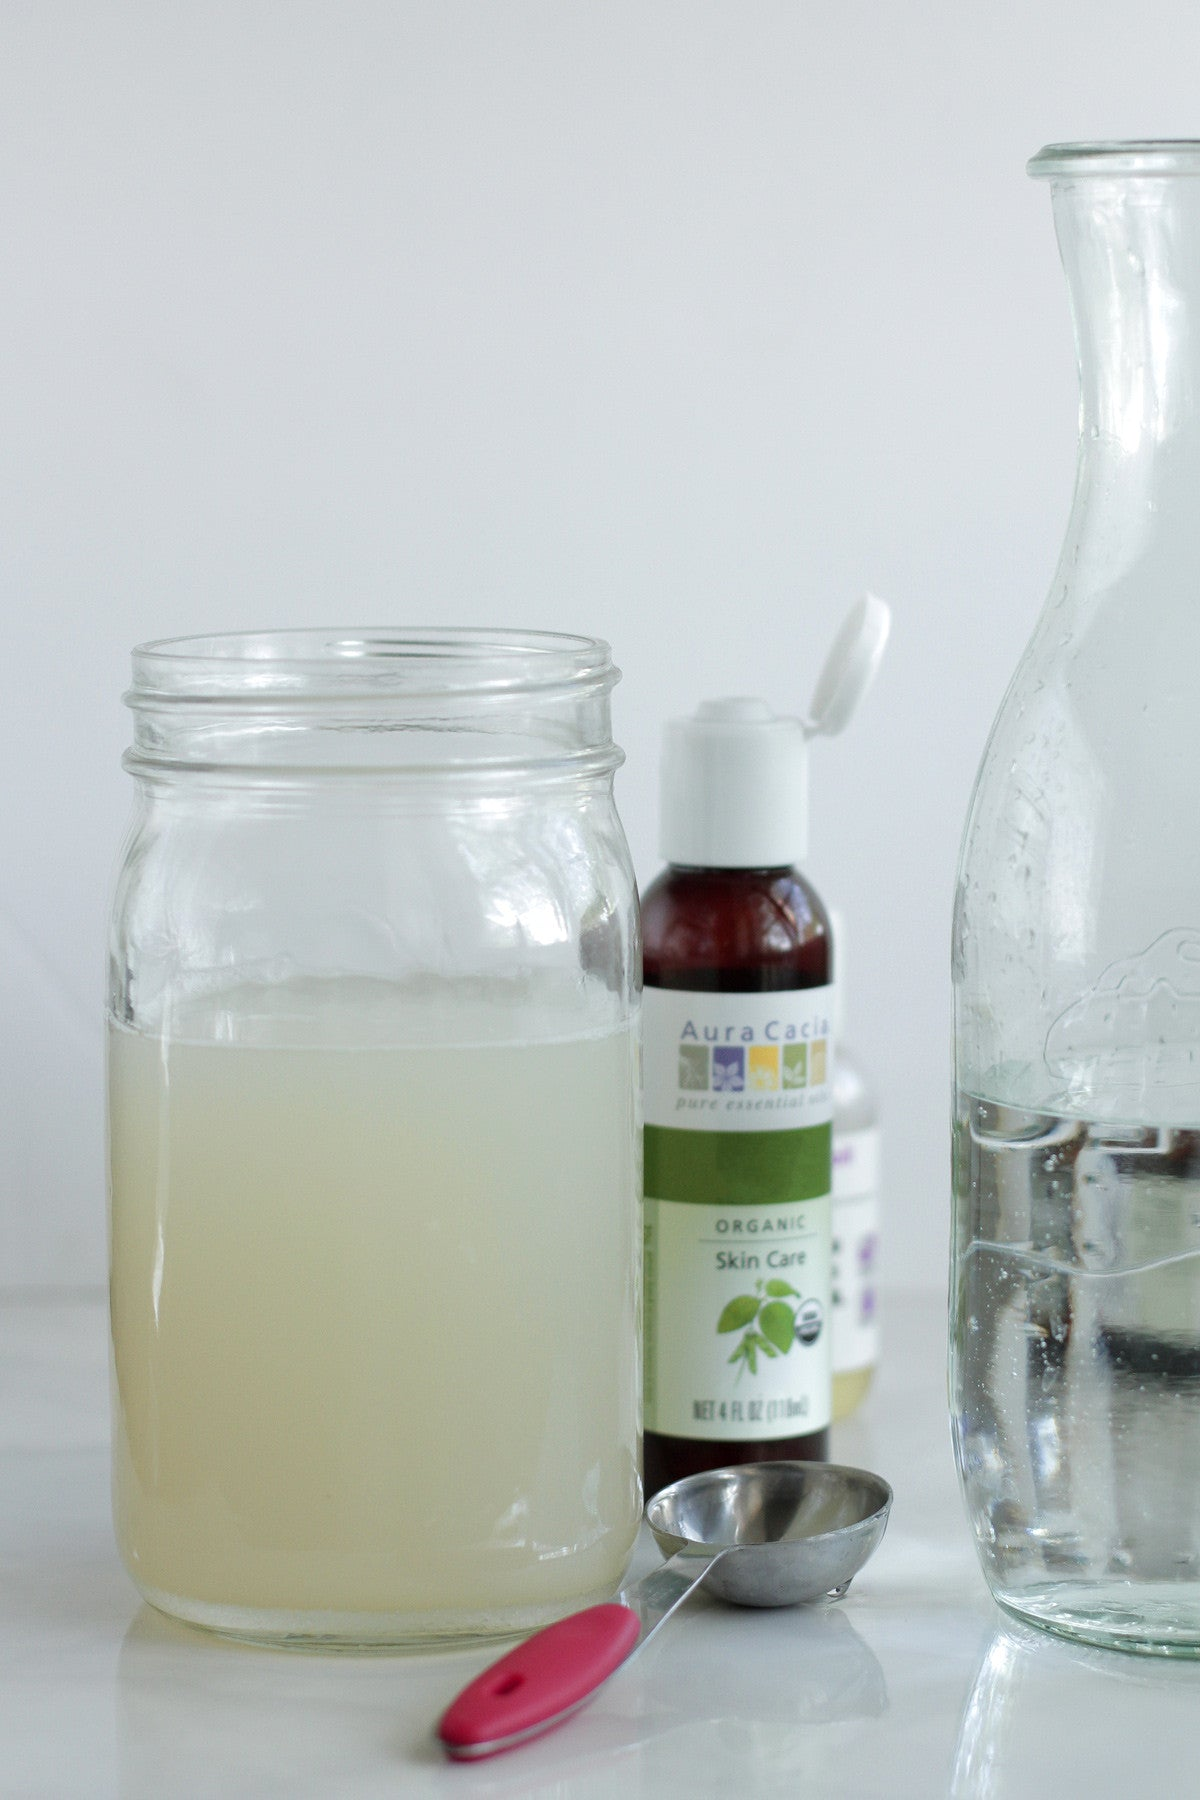 All Natural Home :: Liquid Soaps, Detergents and Sprays